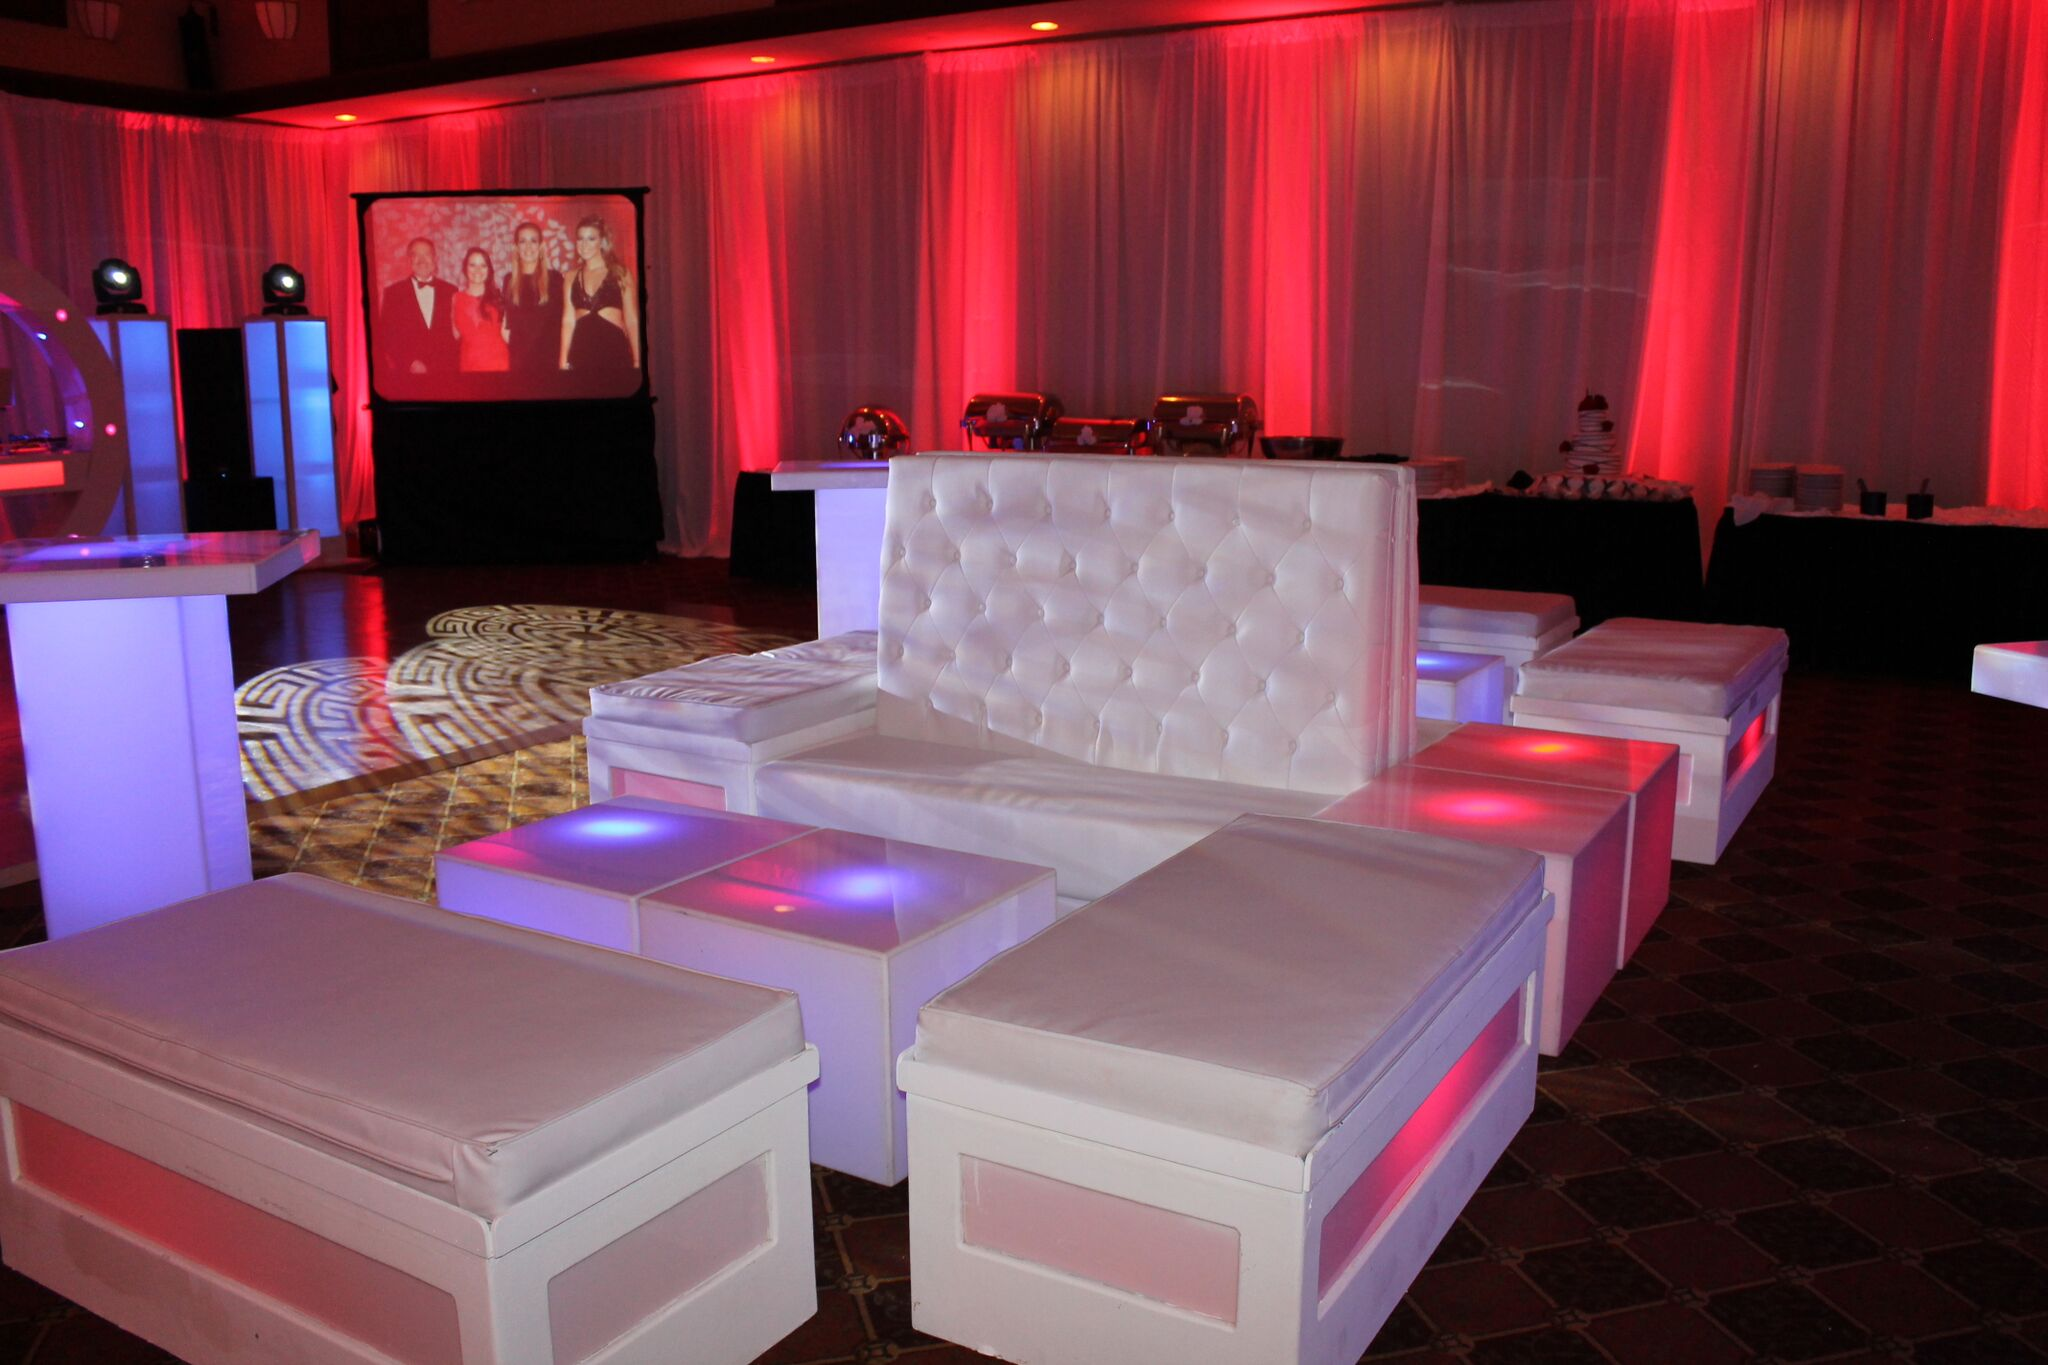 Chair Rentals Fort Lauderdale Lounge Furniture Rental Rental Bar Service Miami Fort Chair